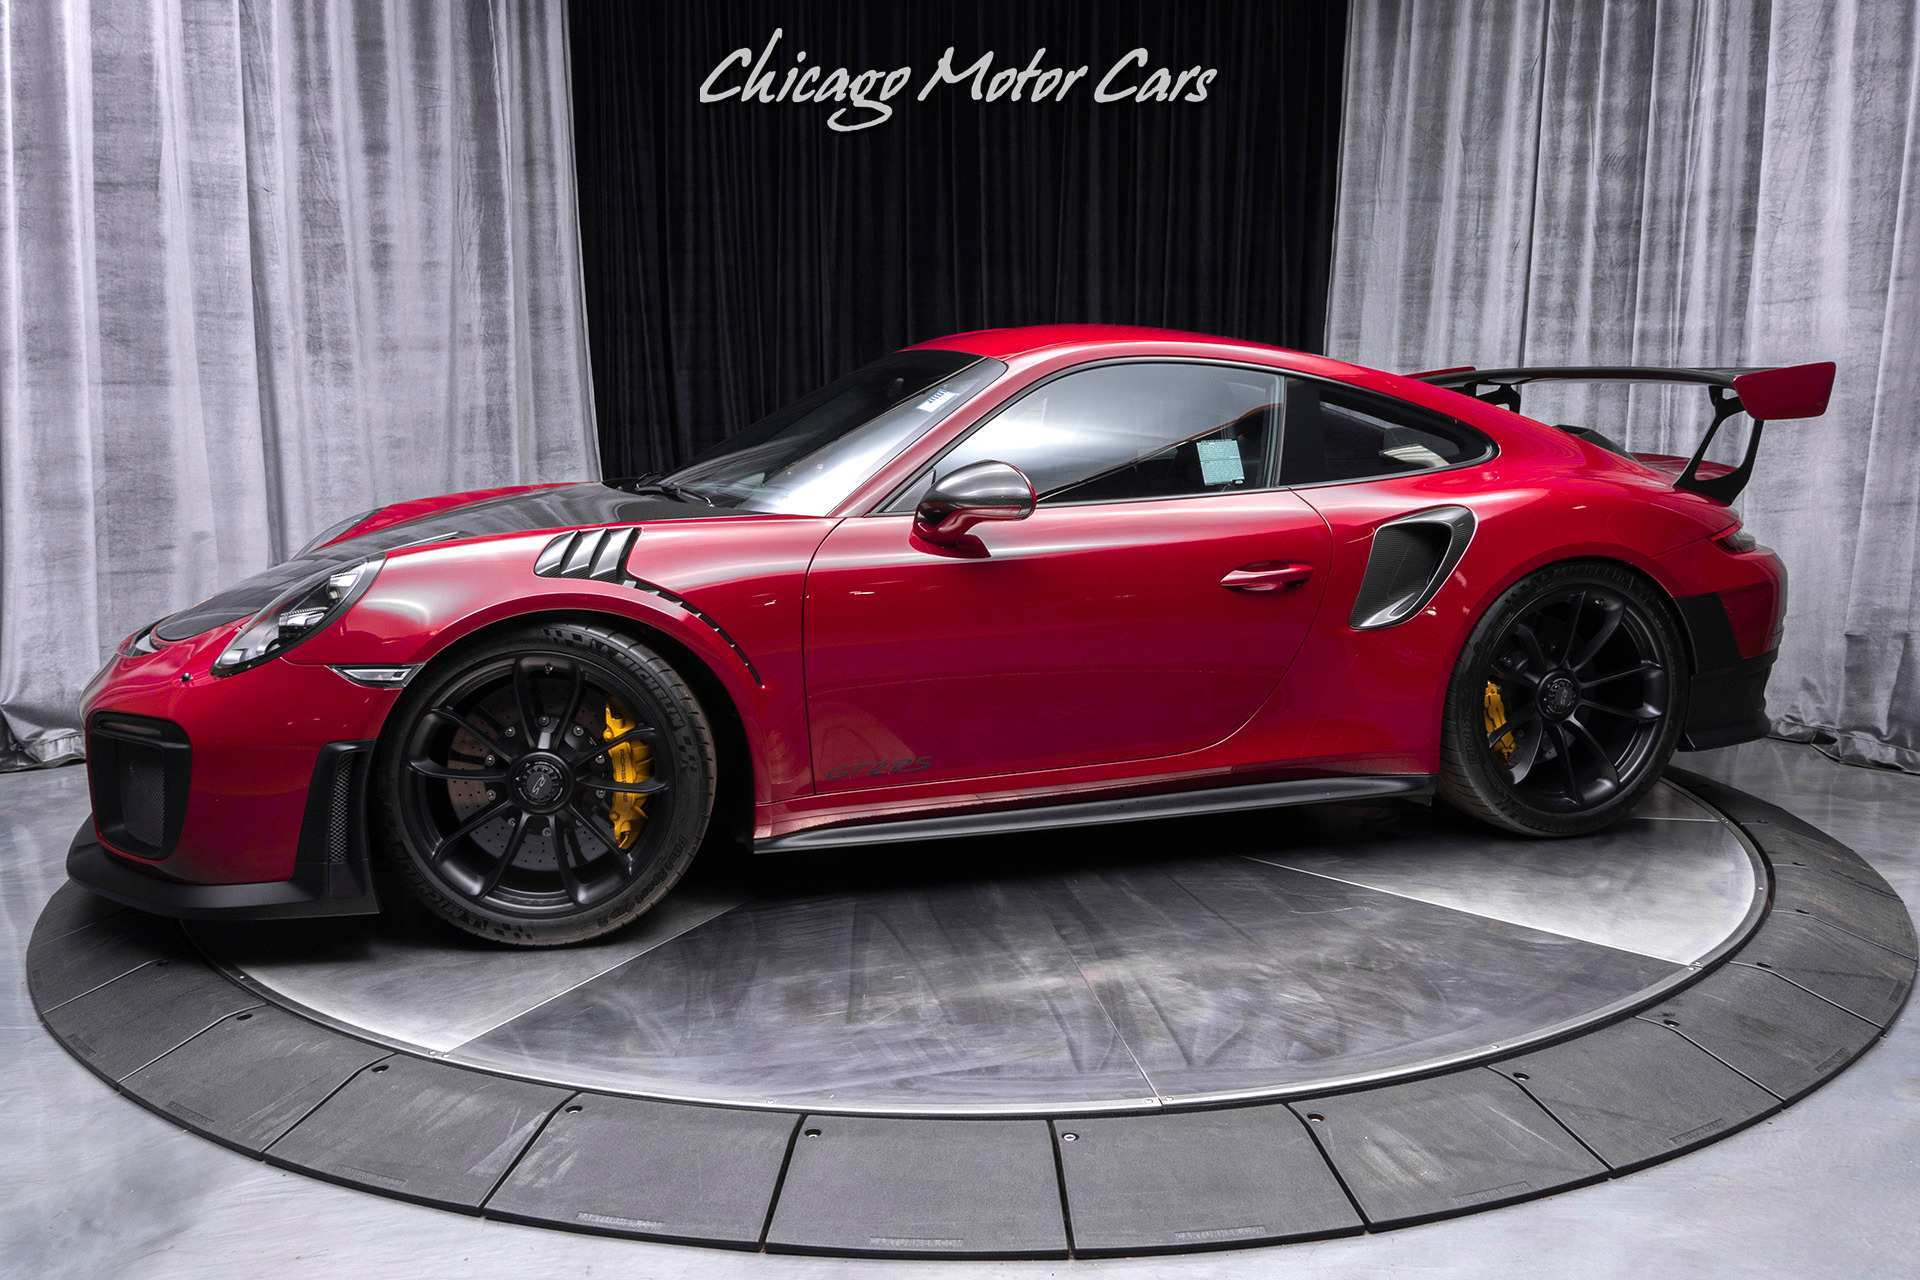 14 New 2019 Porsche Gt2 Rs For Sale Exterior And Interior